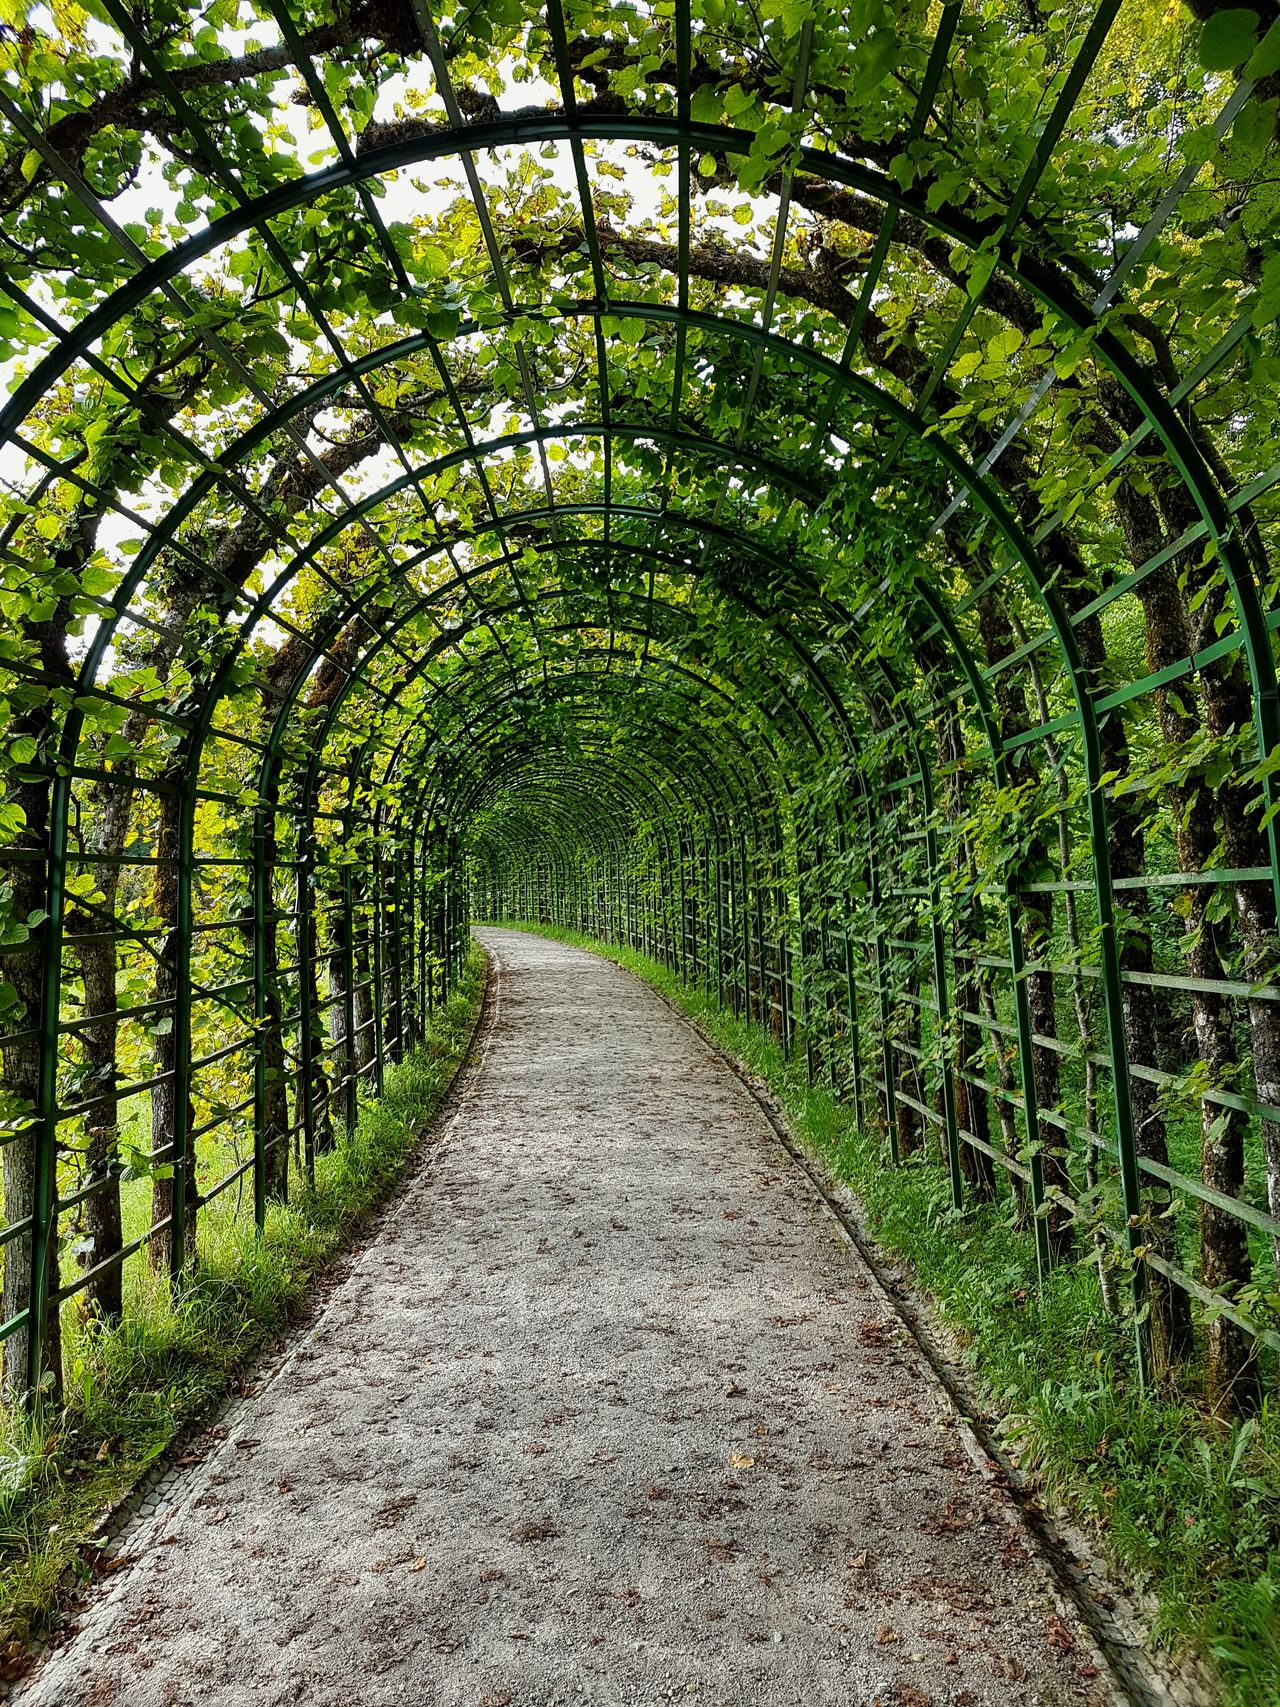 Arch The Way Forward Growth Plant Diminishing Perspective Day Pergola Outdoors Tranquil Scene Archway Creeper Plant Curve Nature Tranquility Arched Green Color Repetition Tunnel Footpath Scenics Beauty In Nature Travel Destinations Green Color First Eyeem Photo First Eyem Photo